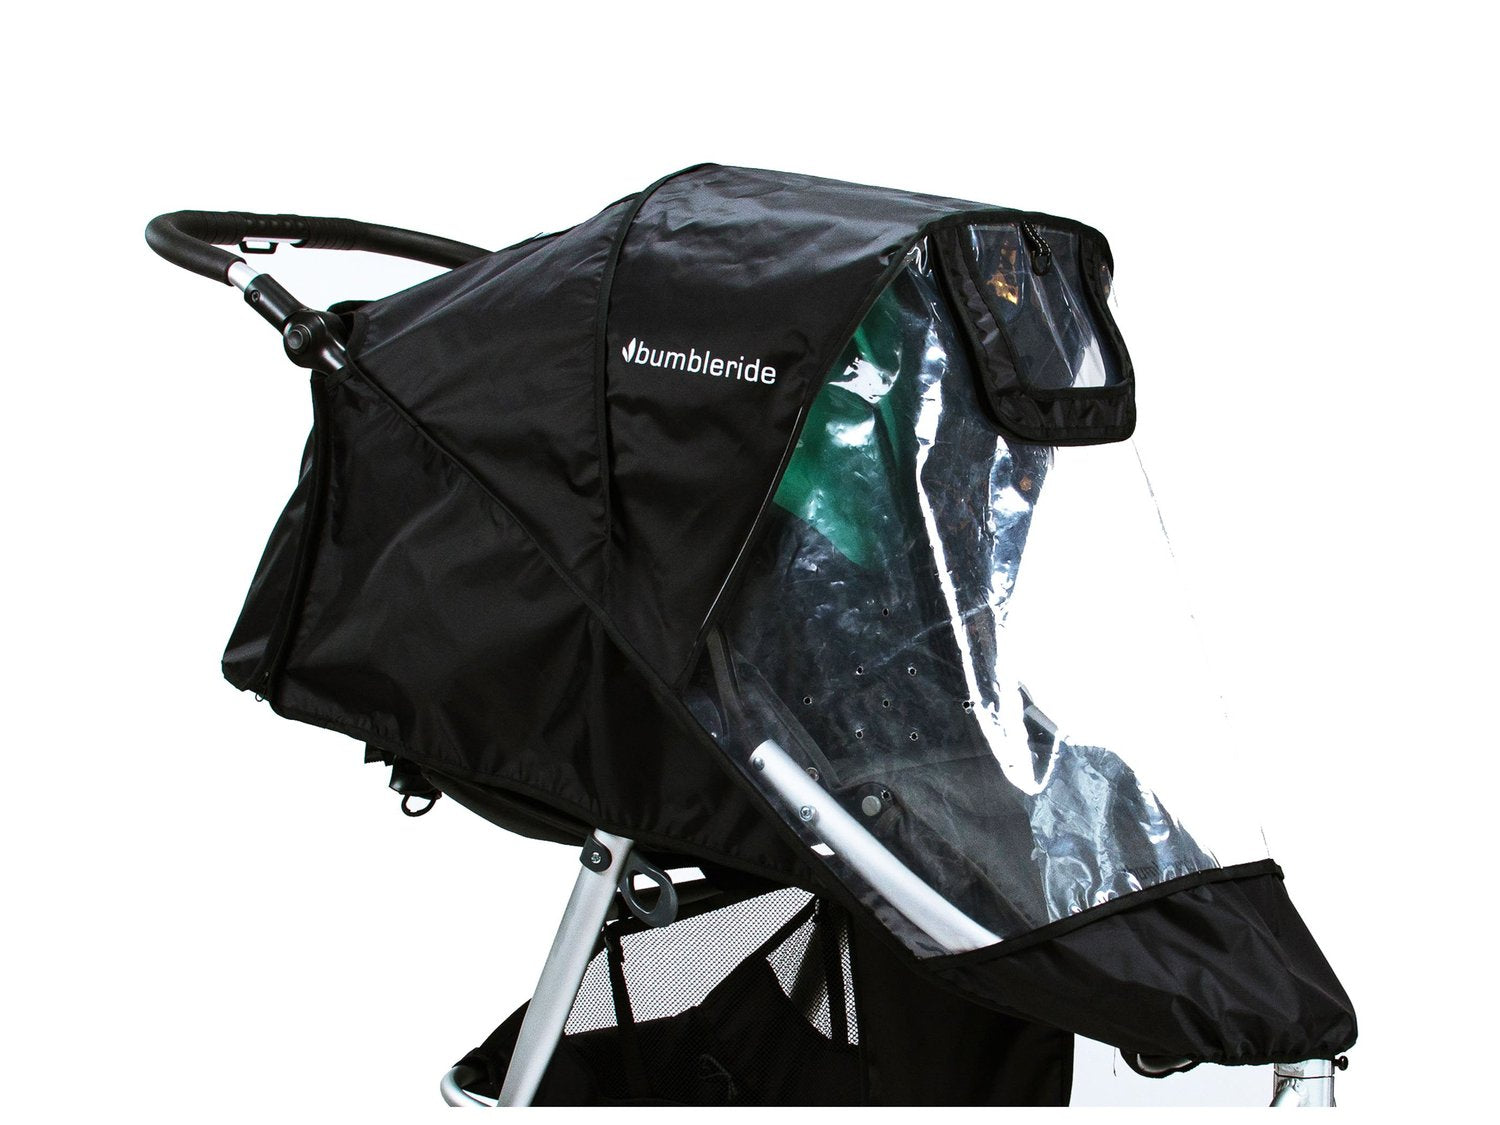 BUMBLERIDE RAINSHIELD FOR INDI/SPEED